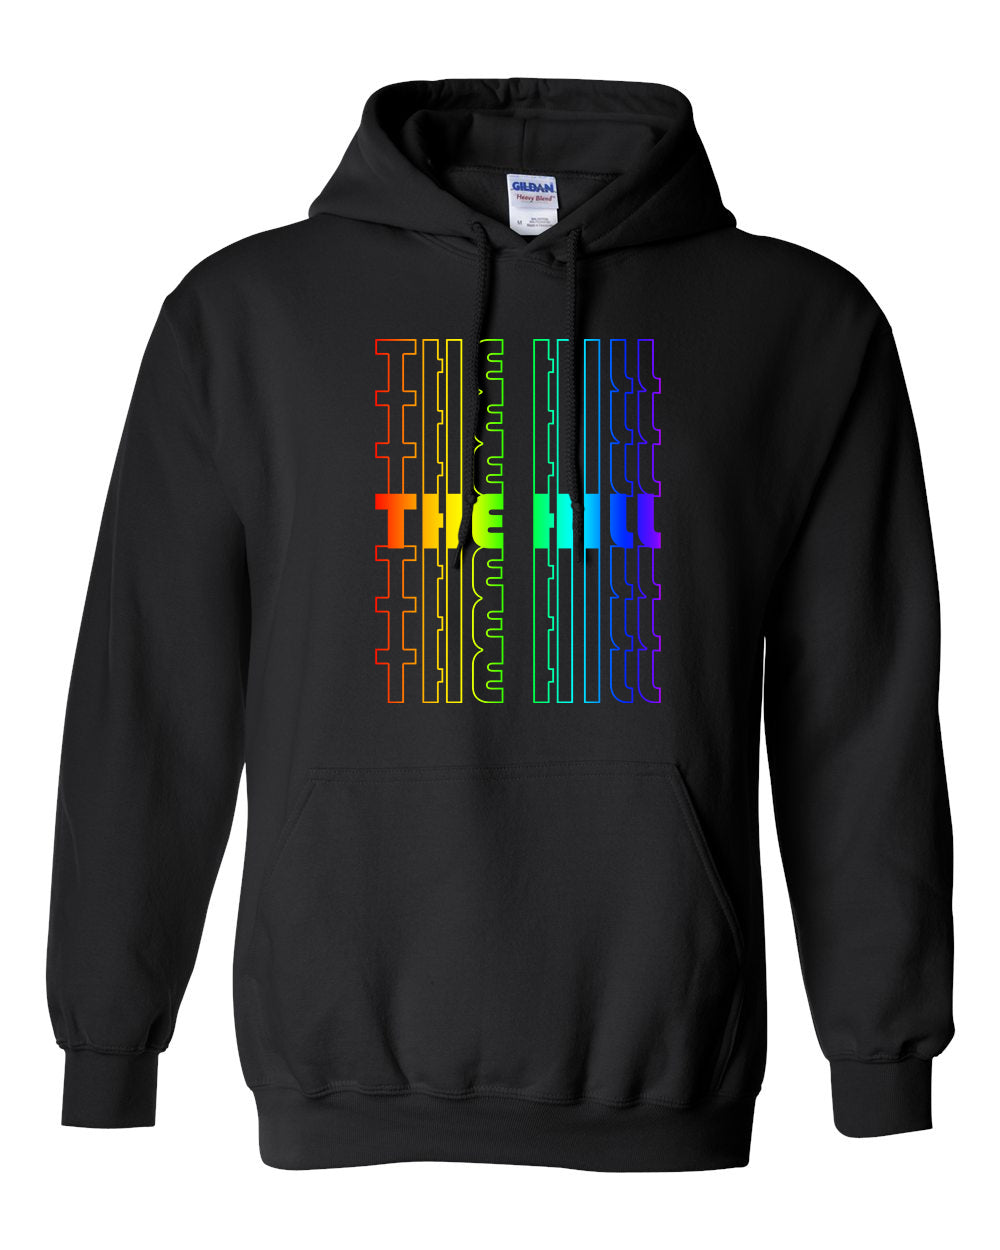 The Hill - Hoody